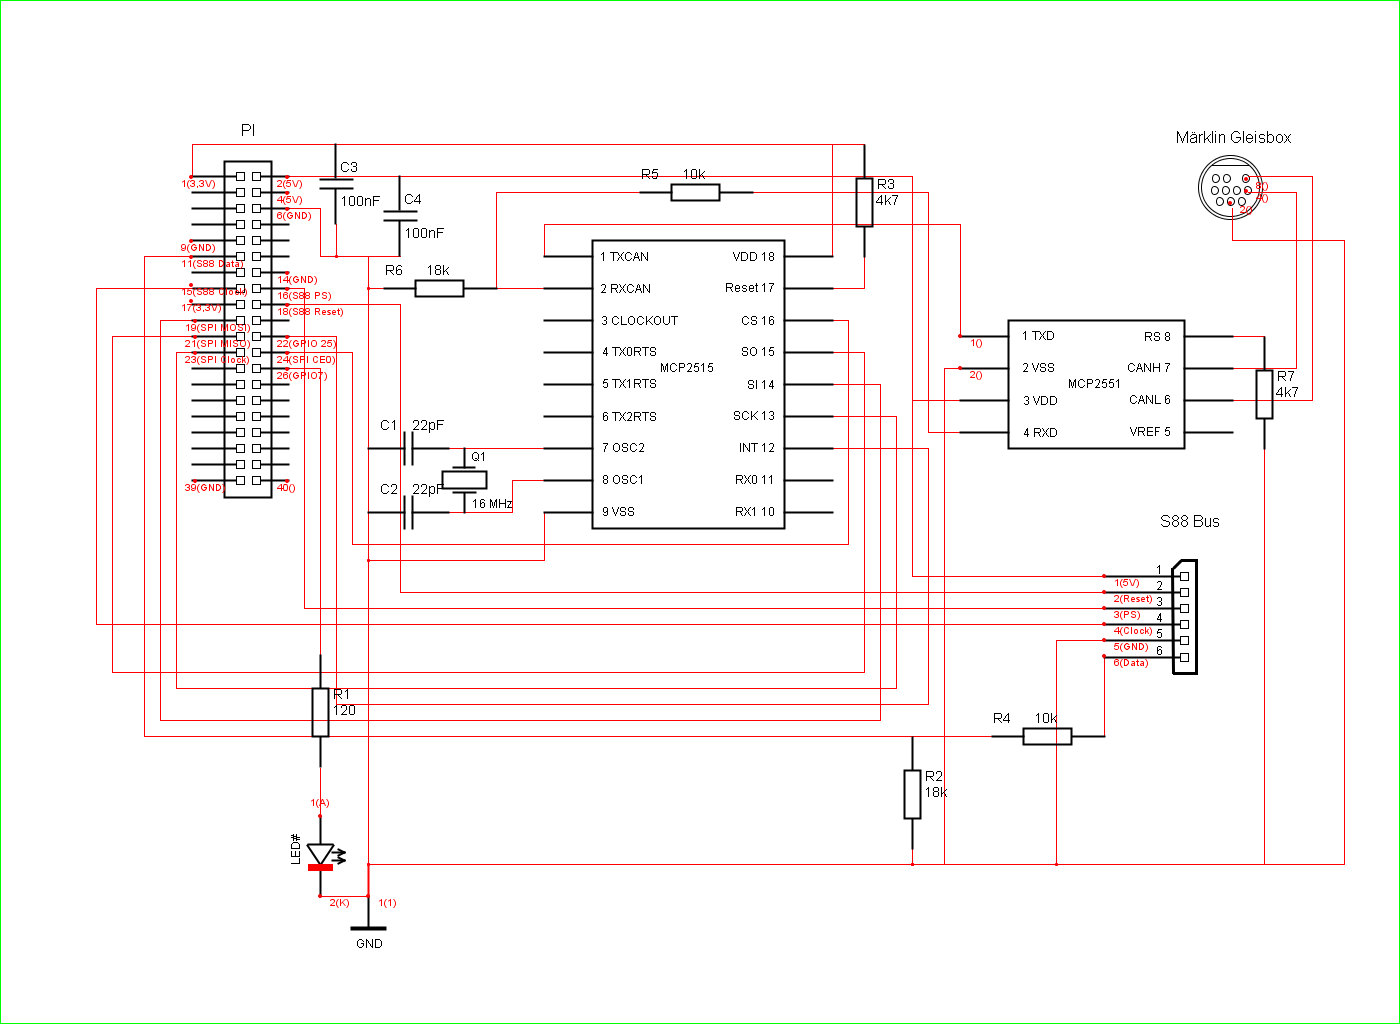 Maerklin Digital Steuerung Mit Raspberry Pi Ohne Cs2 B Circuit Diagram After It Was Working Perfectly I Have Decided To Create A Board Which Fits Into The So Here Is Now My Step By Instruction For